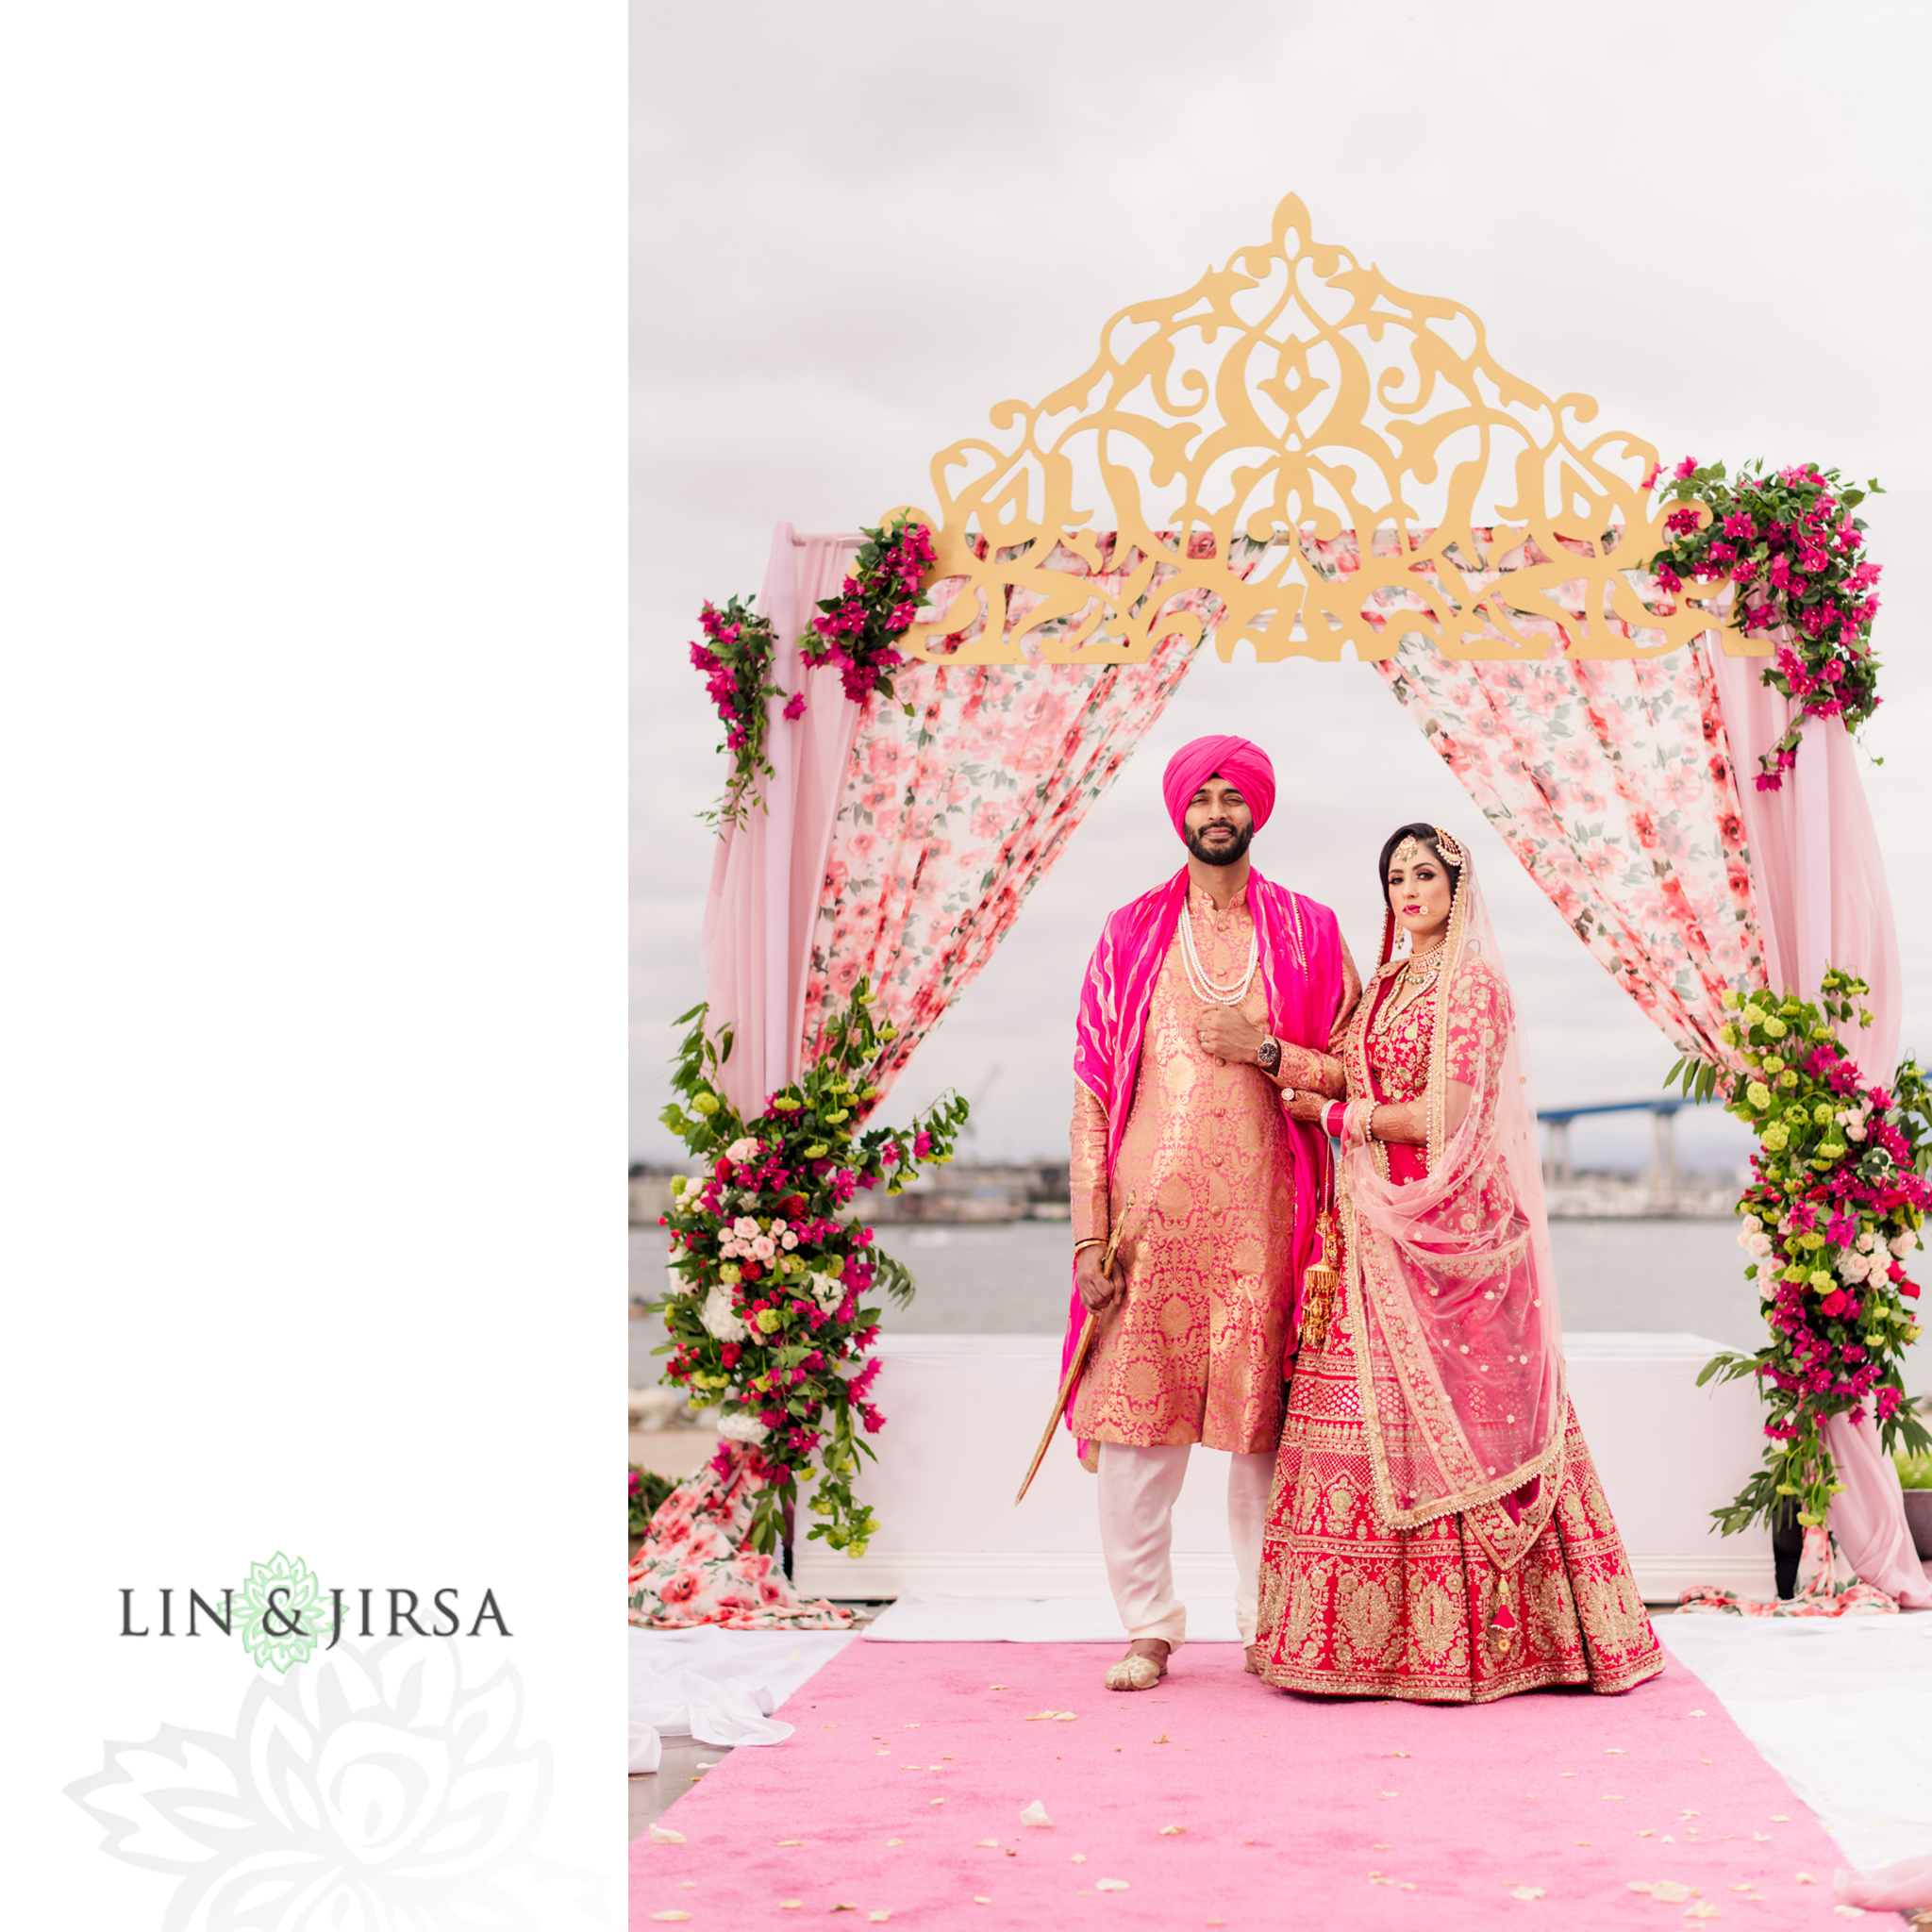 24 Coronado Resort and Spa San Diego Punjabi Wedding Photography